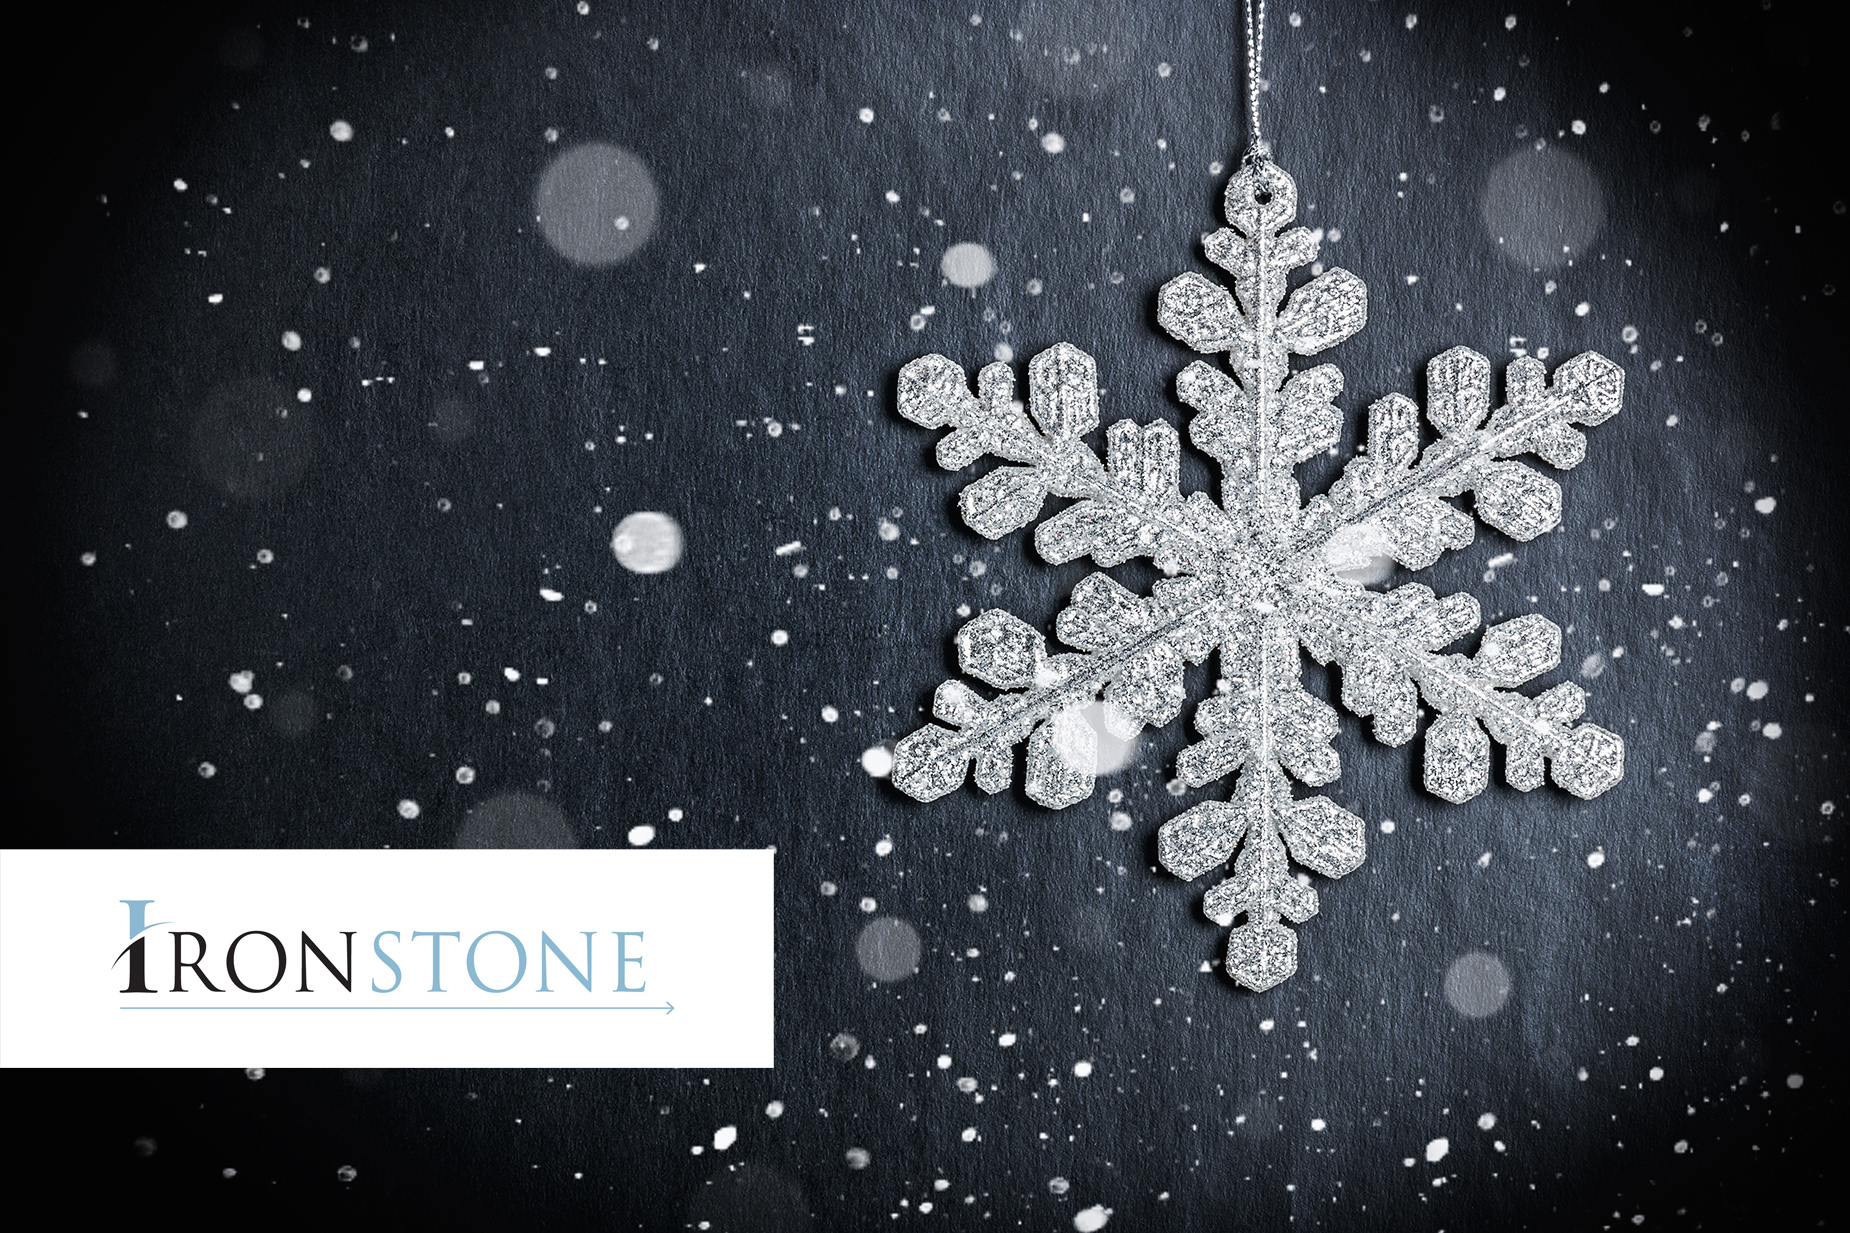 Happy Holidays from your Friends at Ironstone!